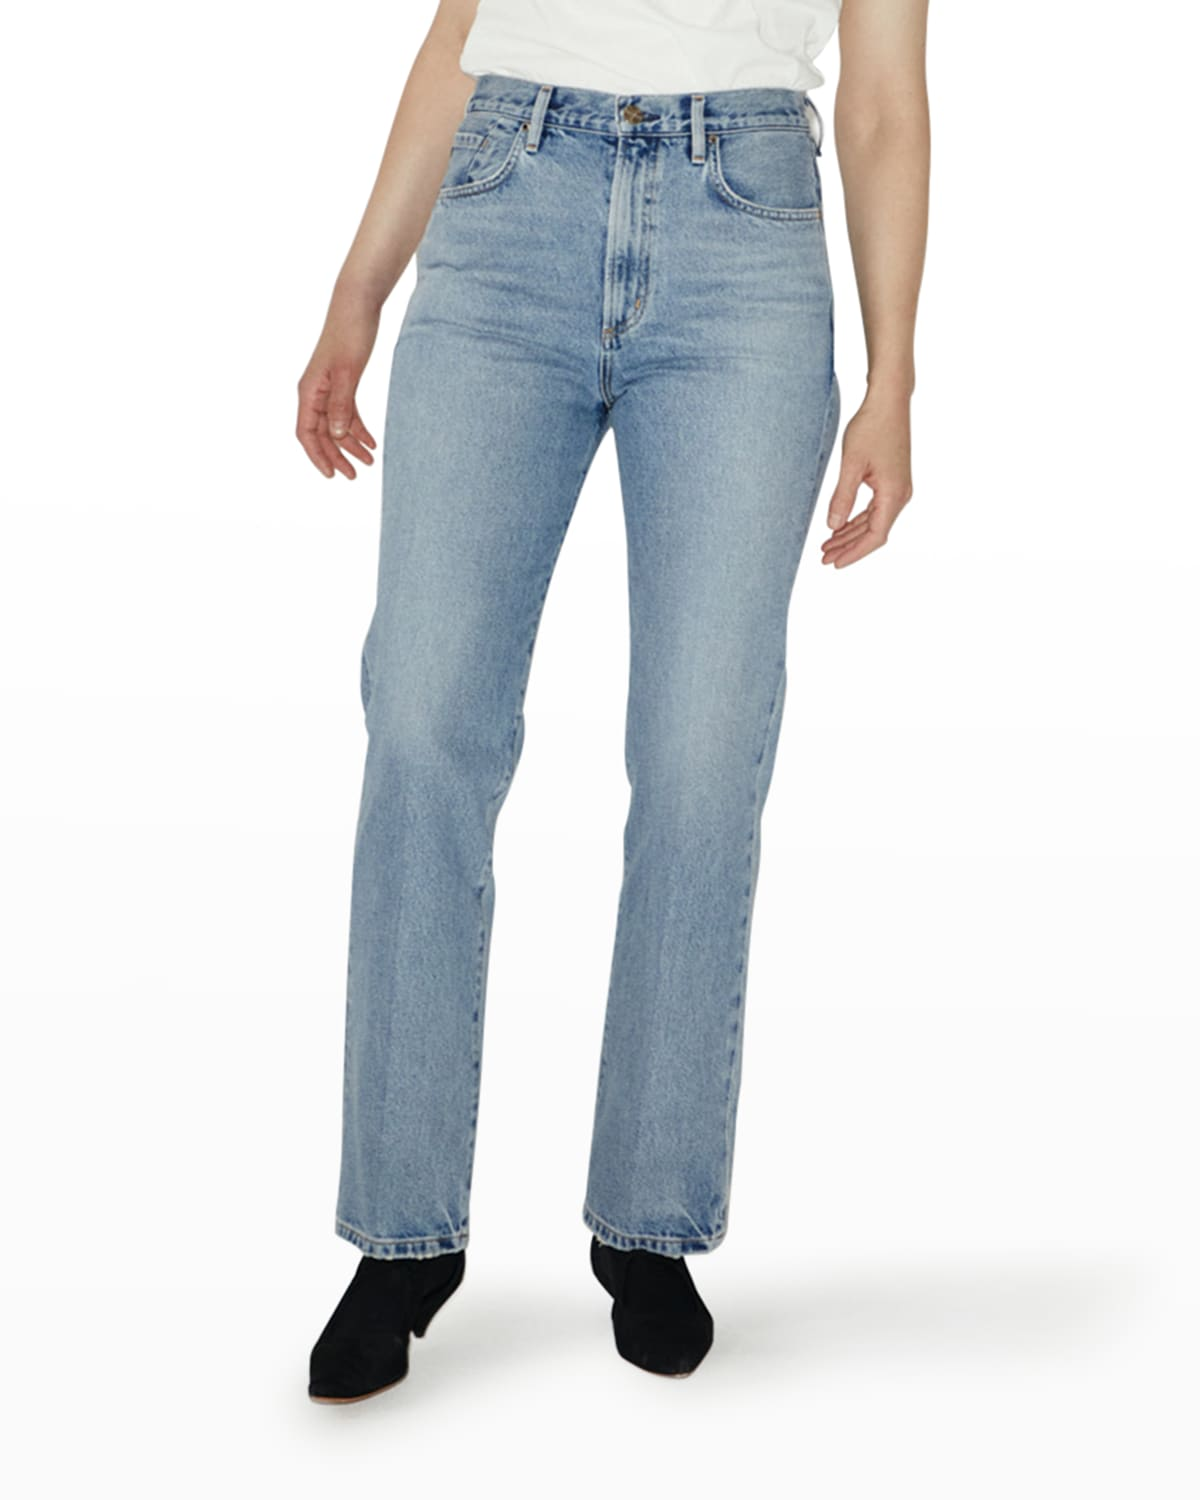 The Martin High-Rise Stovepipe Jeans